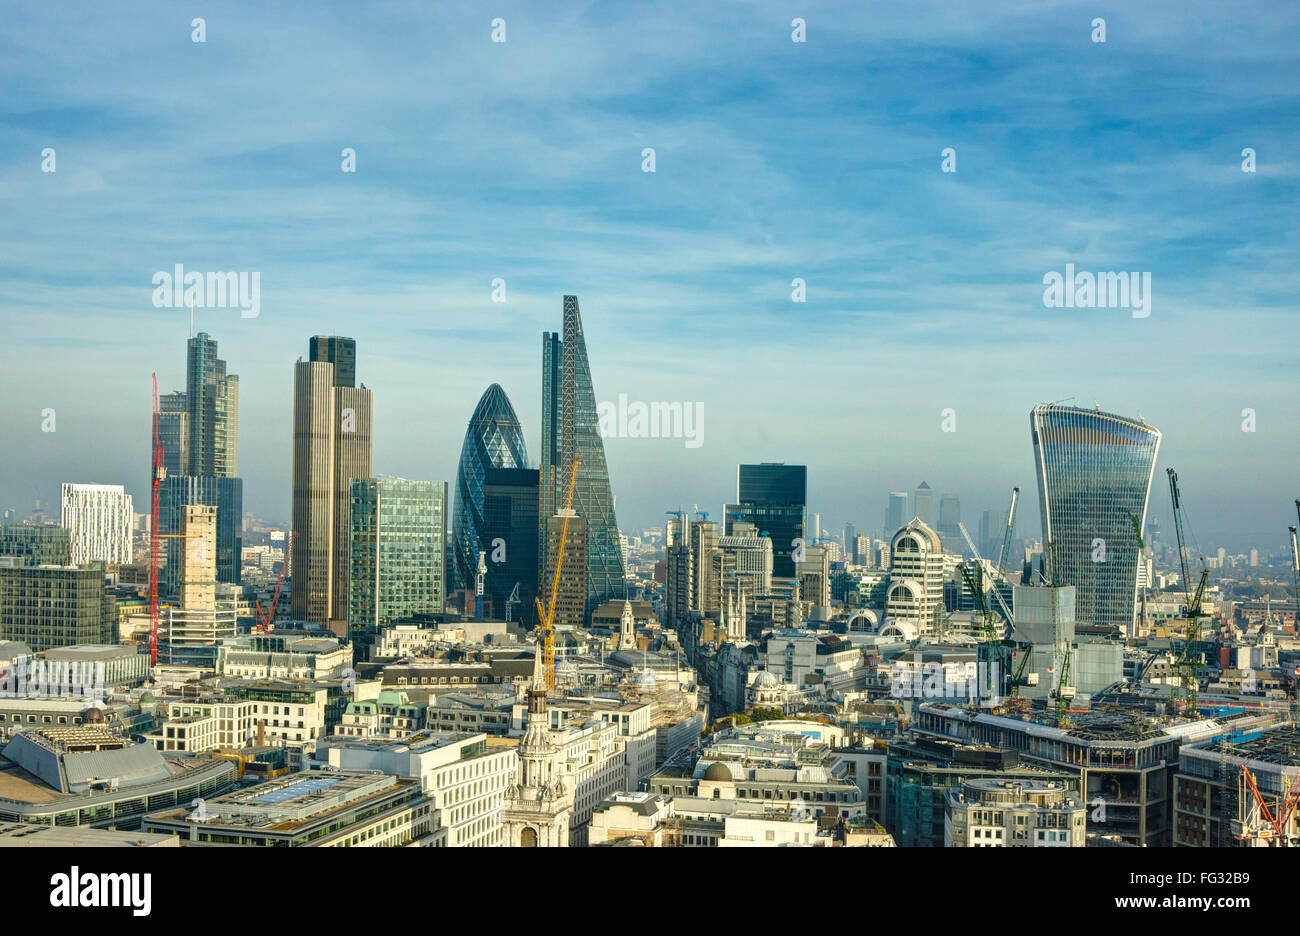 London Skyline.  Skyscrapers City of London.  Financial District - Stock Image